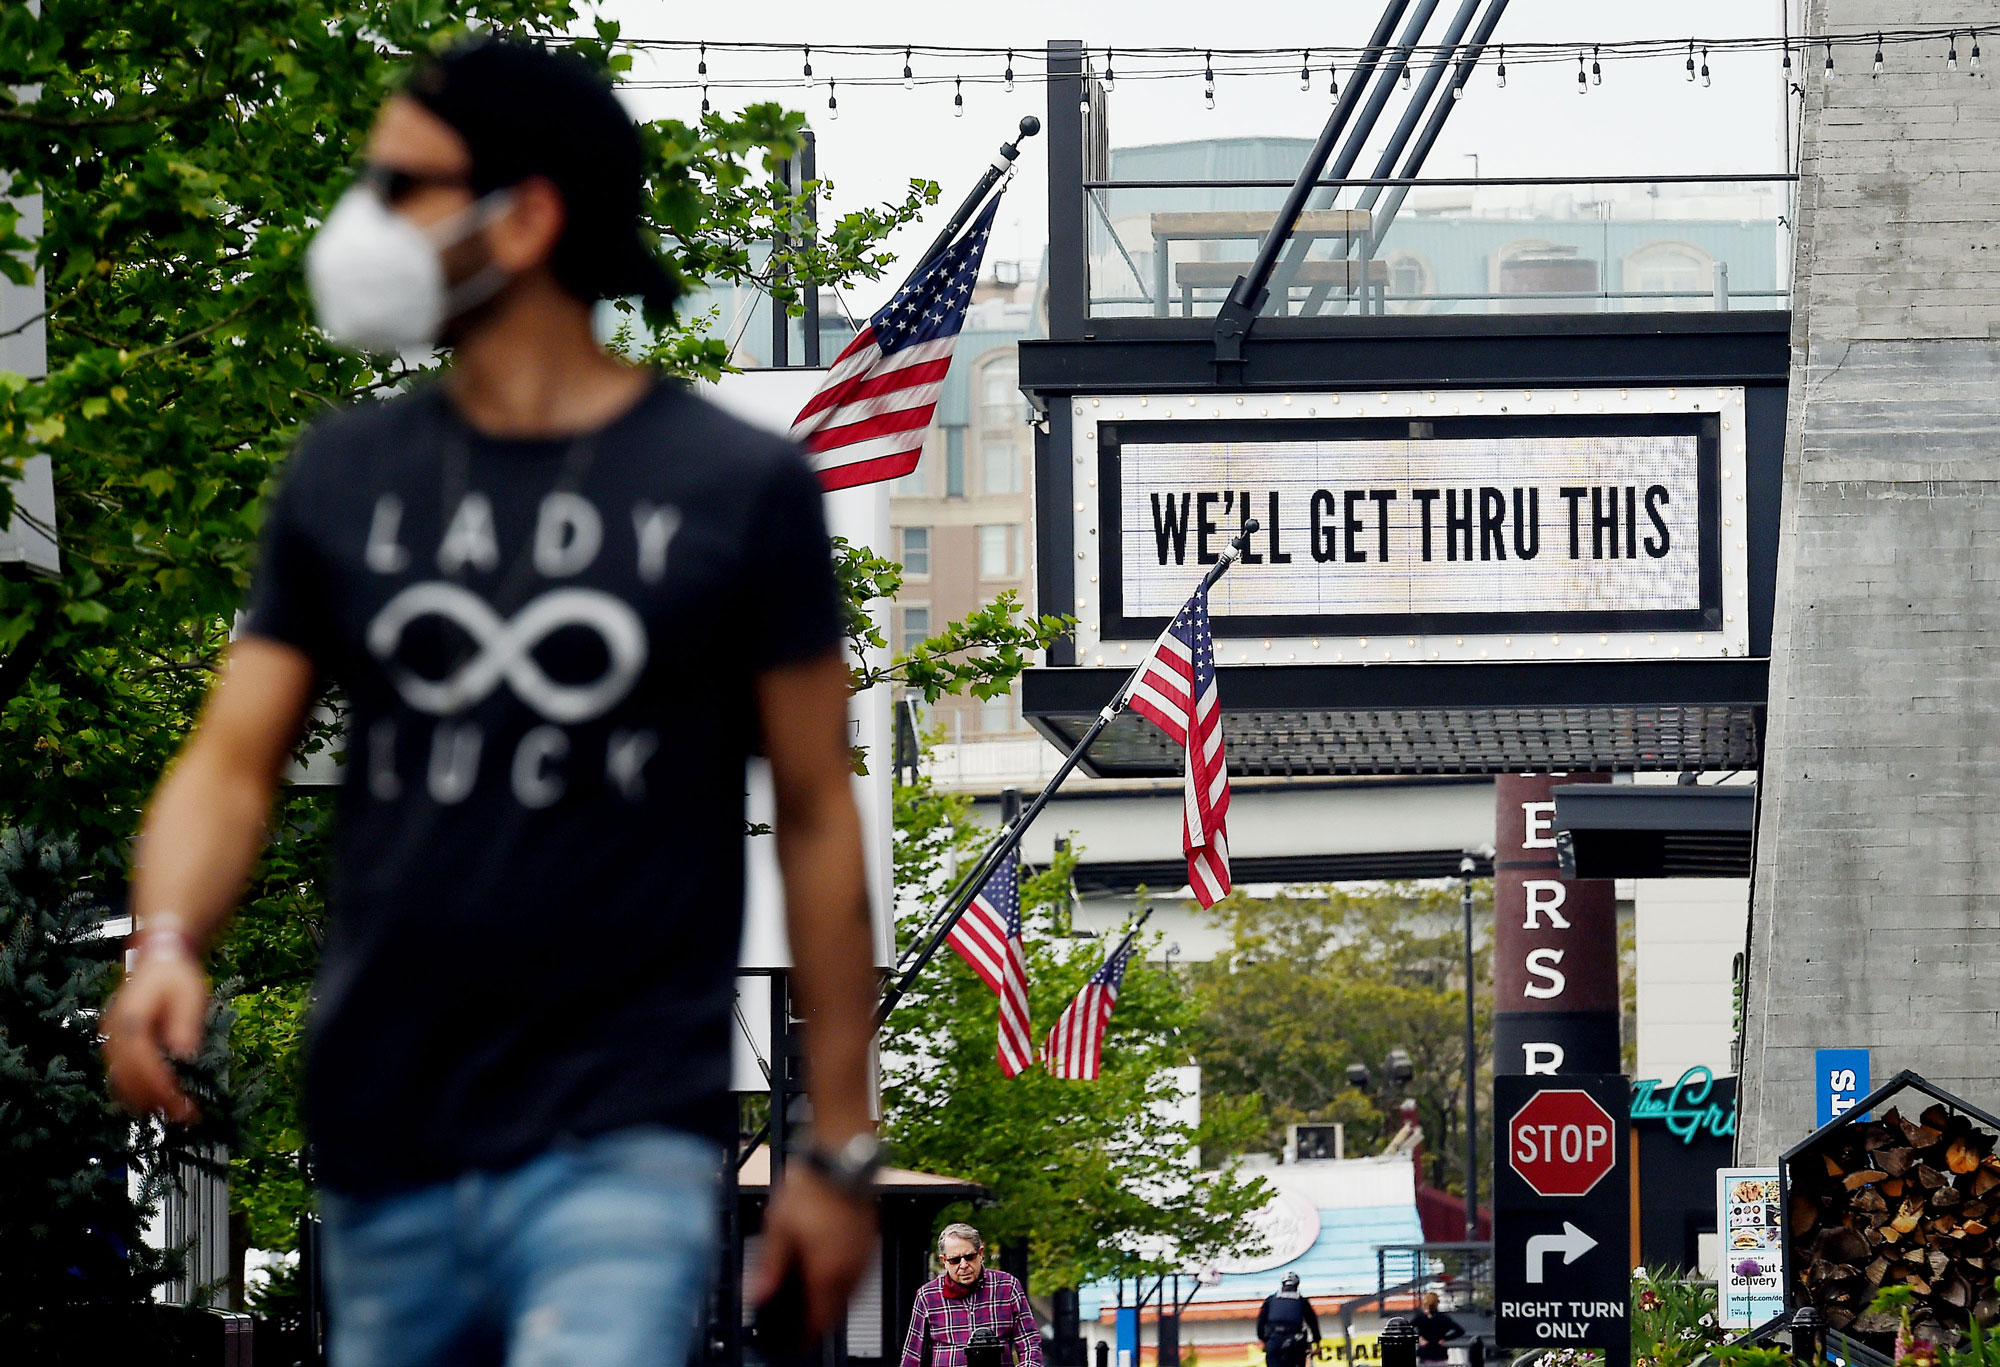 A man walks past a sign in front of the The Anthem on April 29 in Washington.